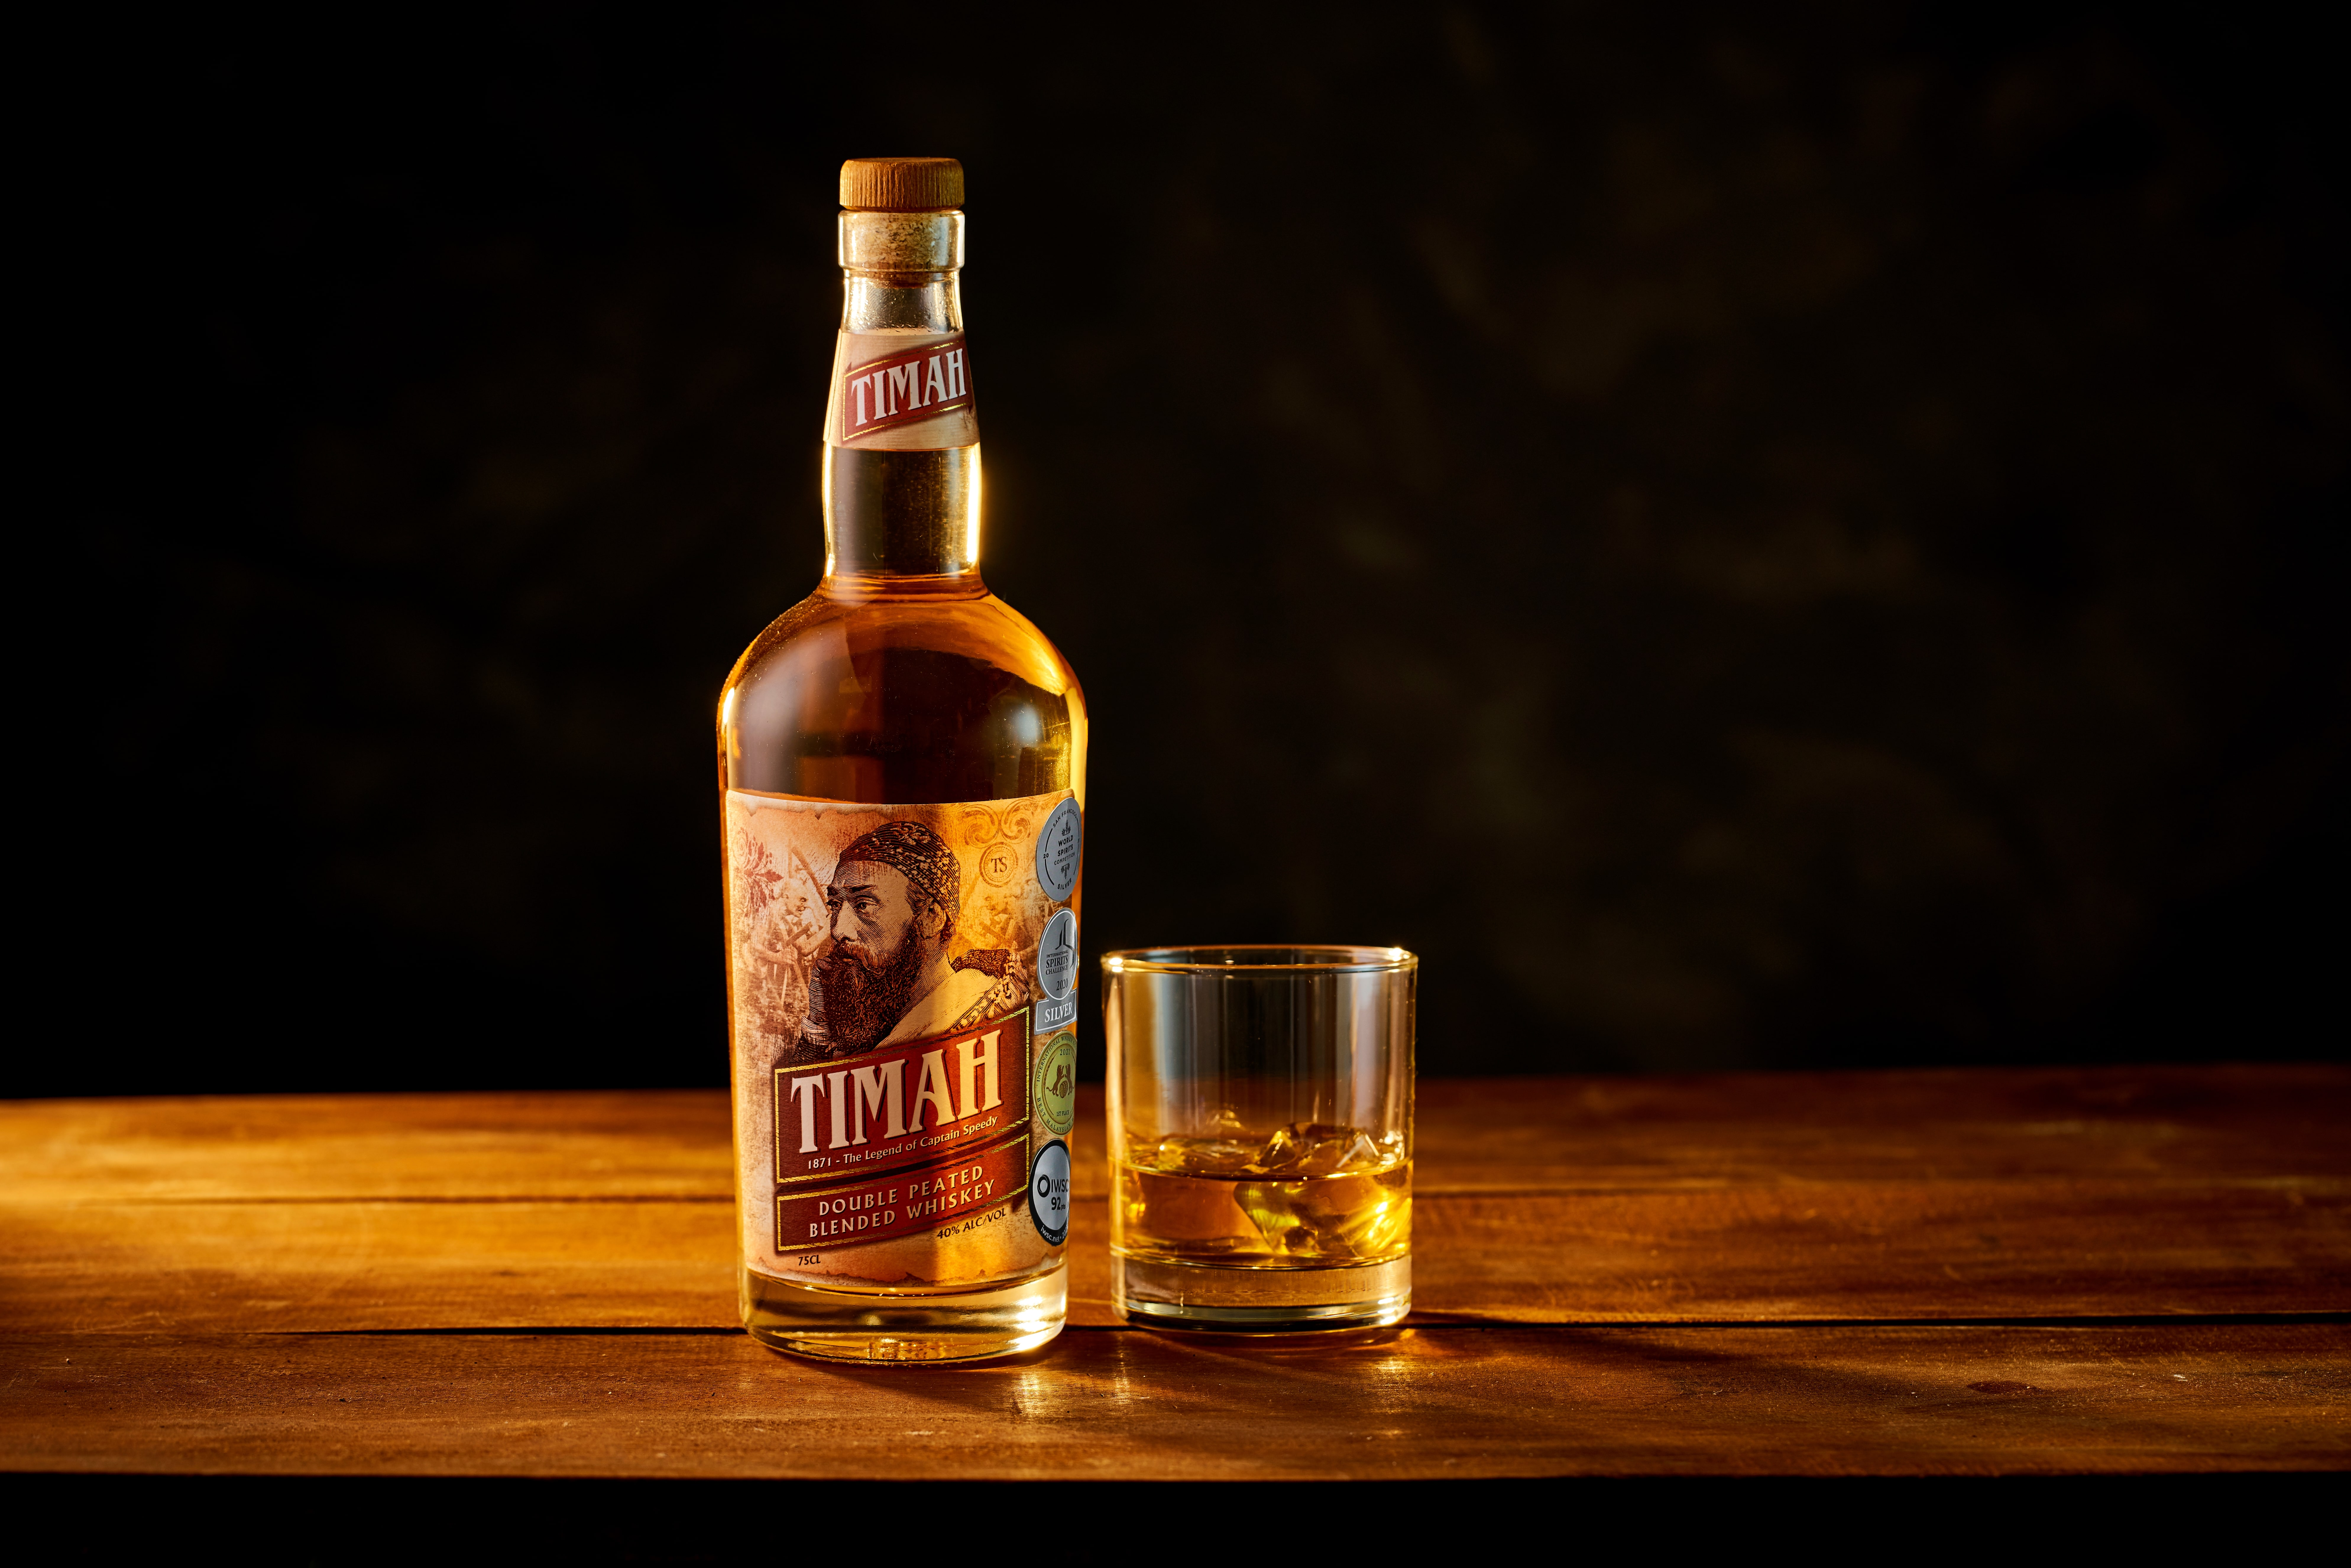 Timah Is Malaysia's Award-Winning, Double Peated Whisky